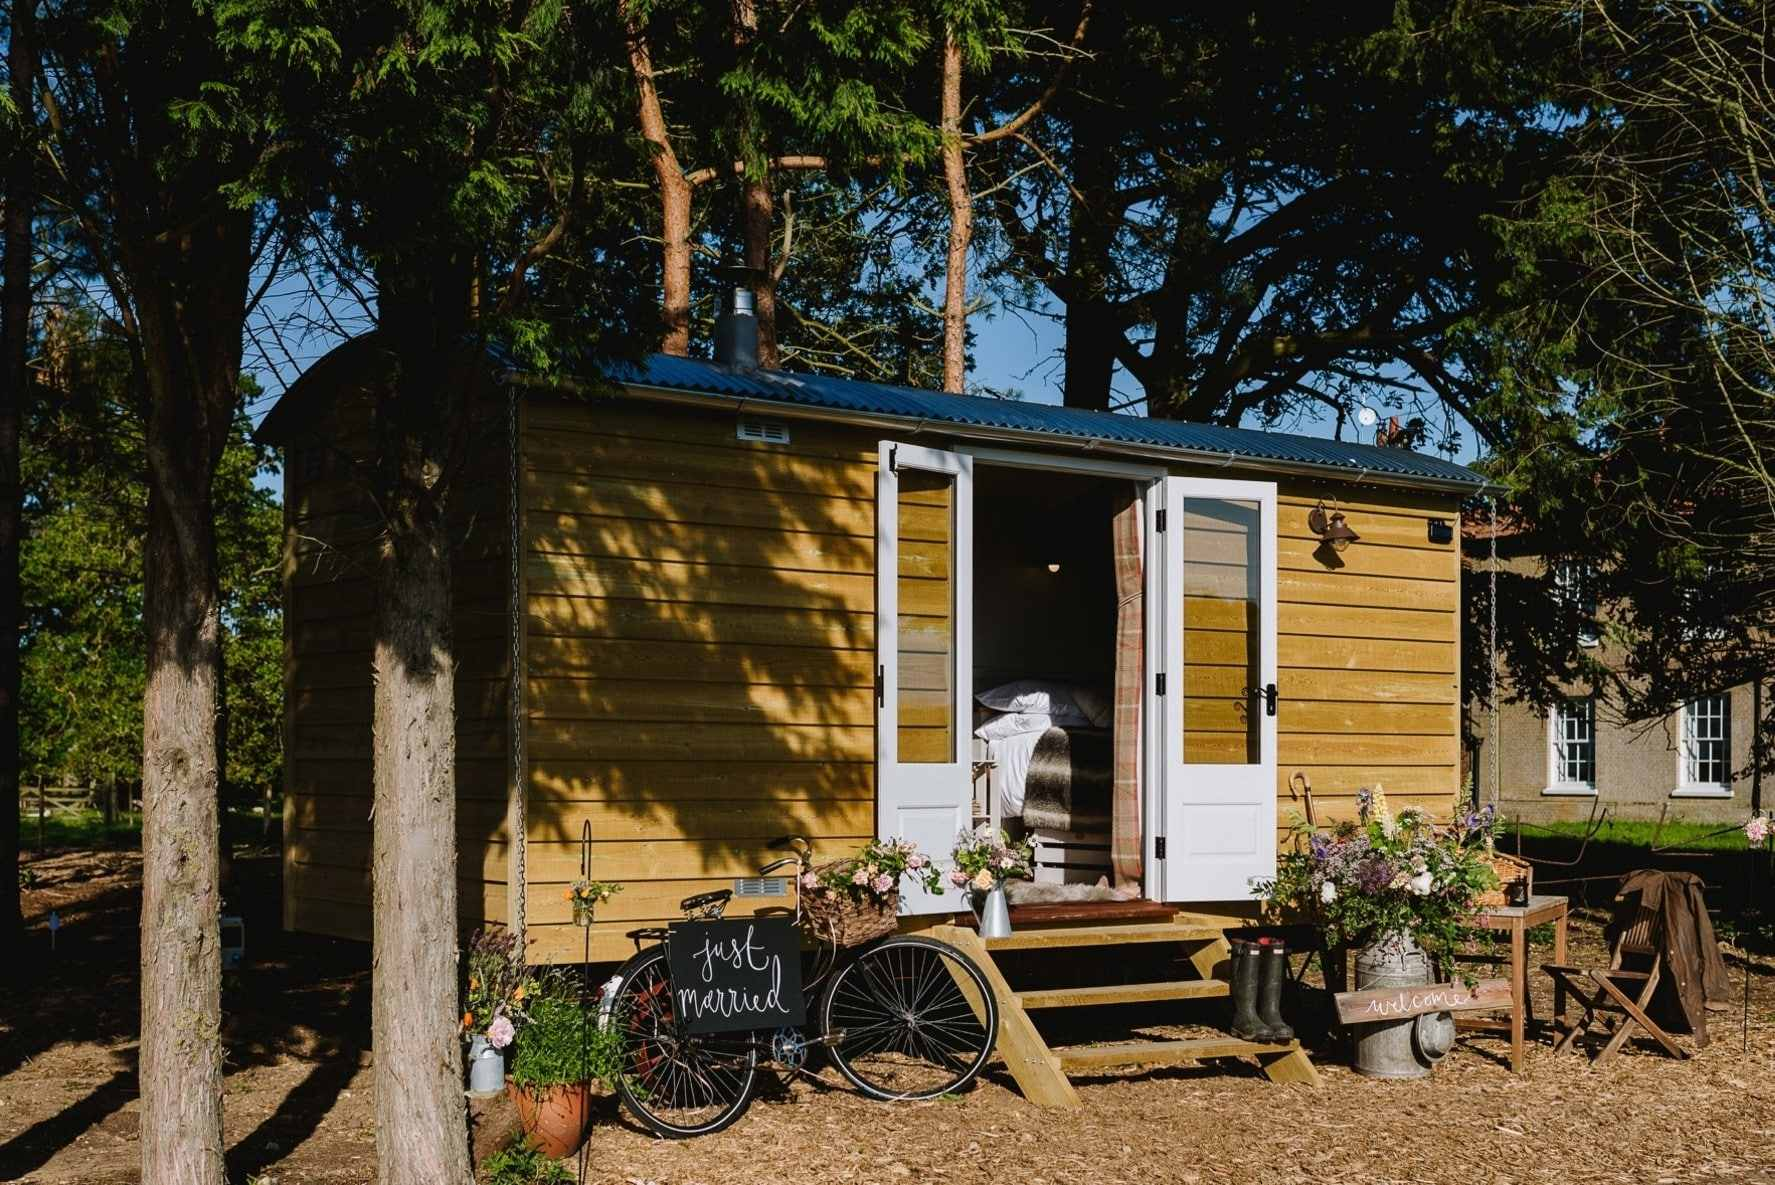 the-herdwick-hideaway-godwick-shepherds-hut-amid-trees-with-bike-at-front